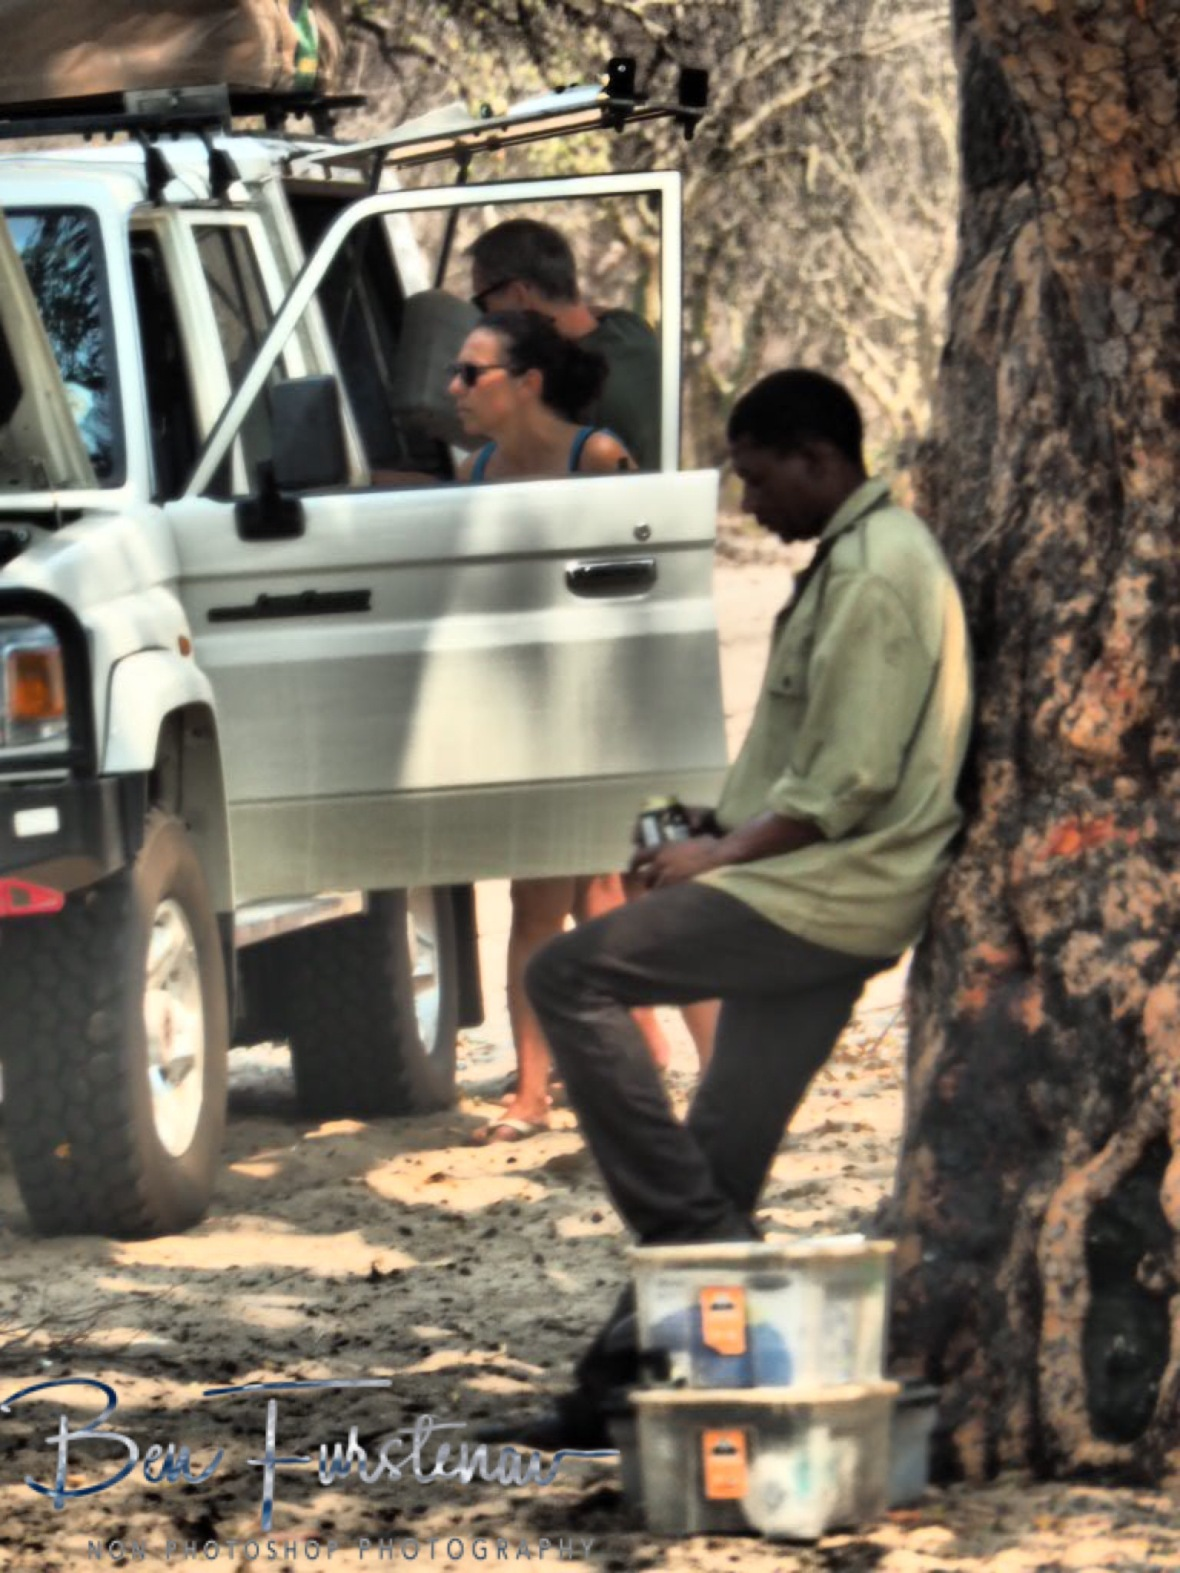 Chris deep in thoughts, enjoying a cold beer, Khaudum National Park, Namibia